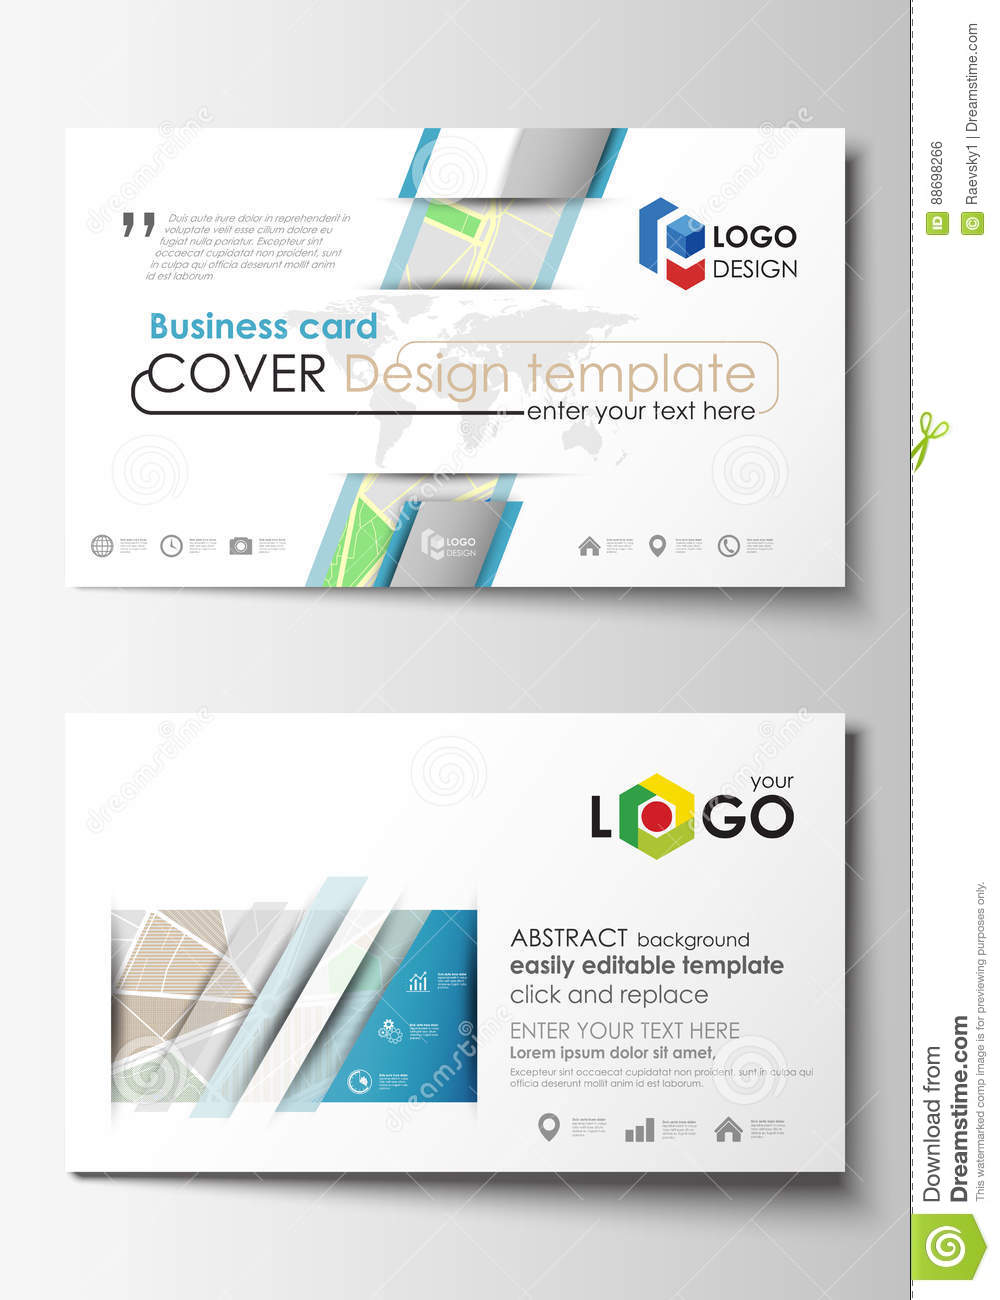 Business card templates easy editable layout city map with streets business card templates easy editable layout city map with streets flat design template for tourism businesses alramifo Images